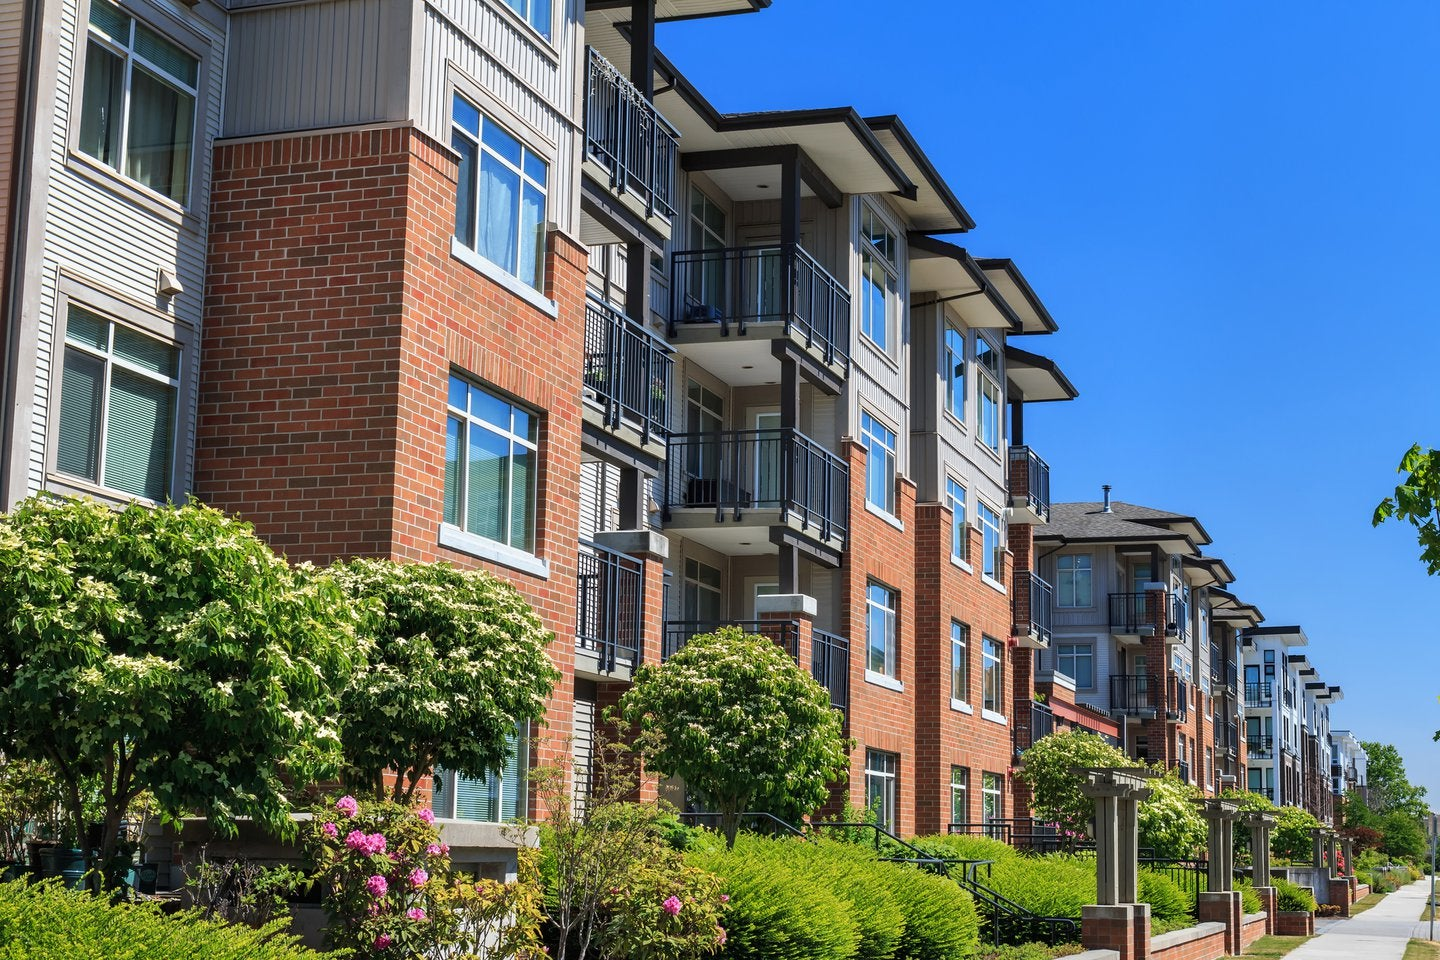 nice residential condos with balconies